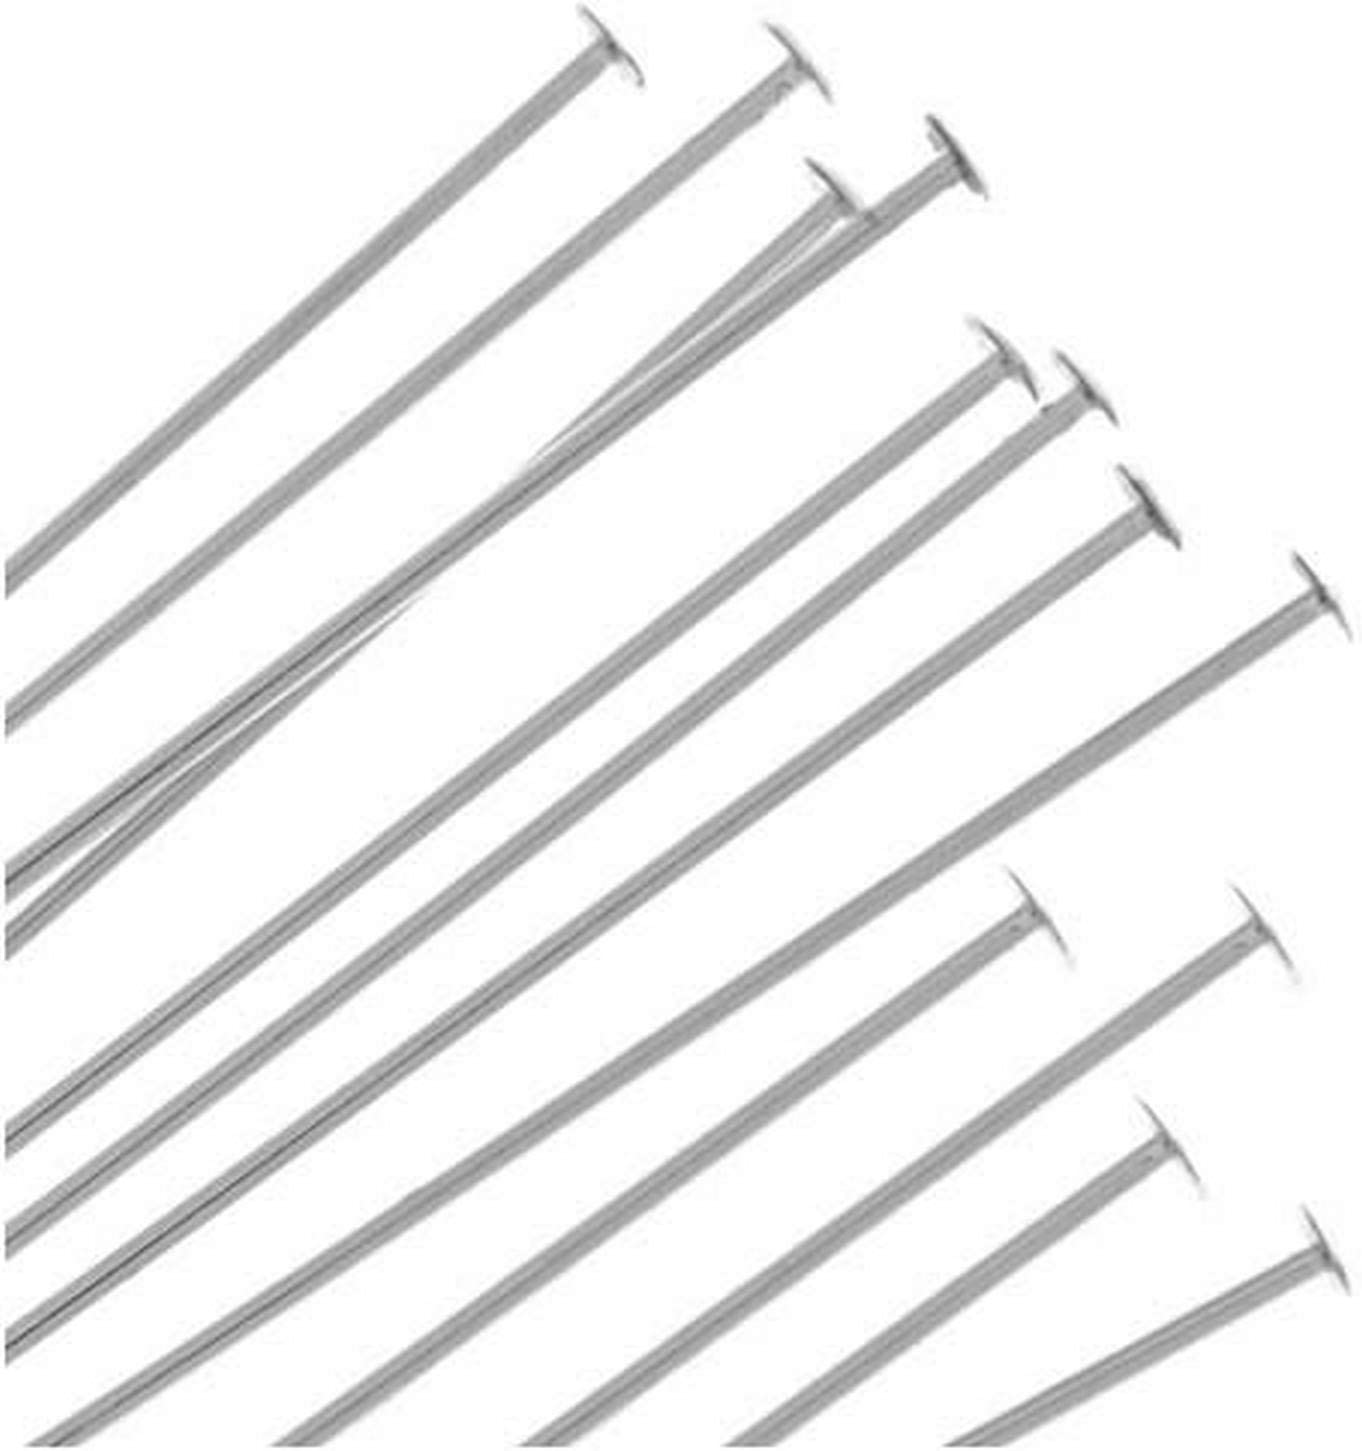 Craftdady 50pcs Platinum Iron Slide On End Clasp Tubes Slider End Caps Crimp Connector for DIY Jewelry Craft Making